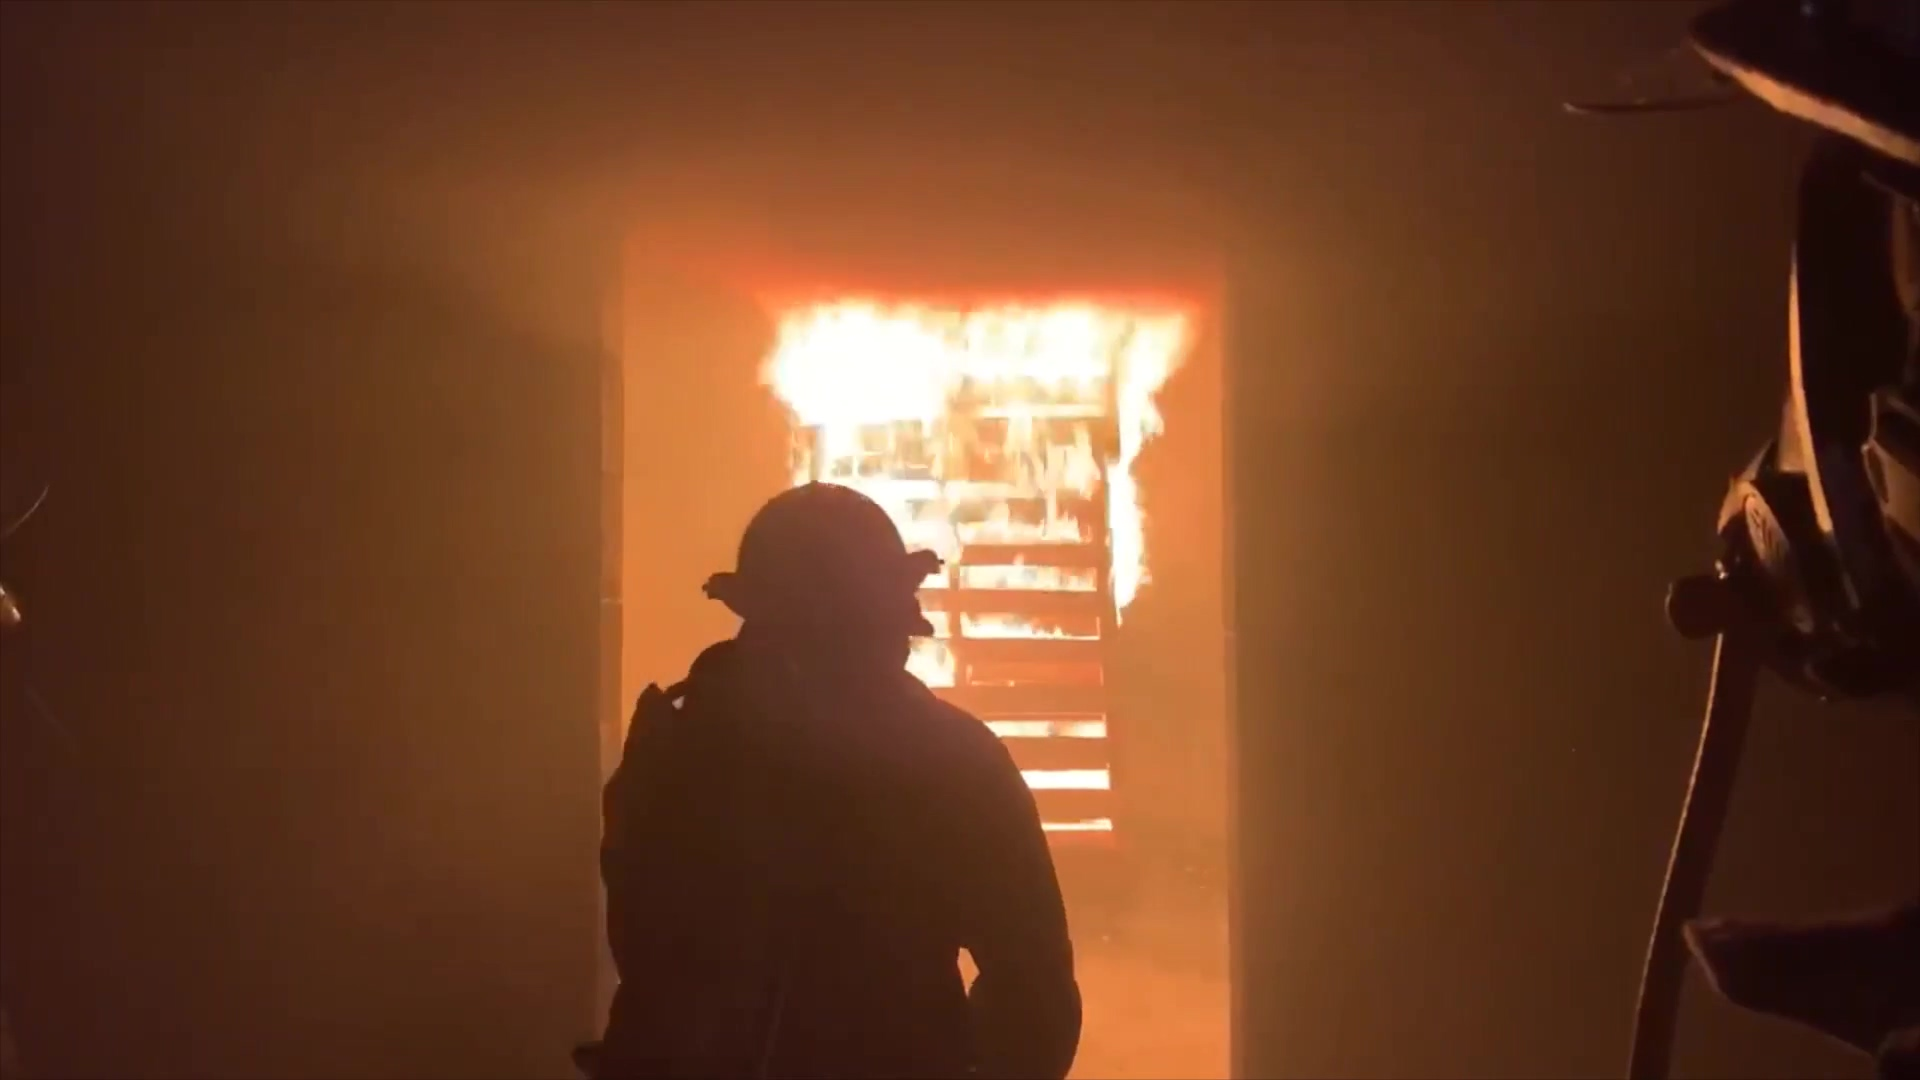 Forest Park Live Fire Training Video